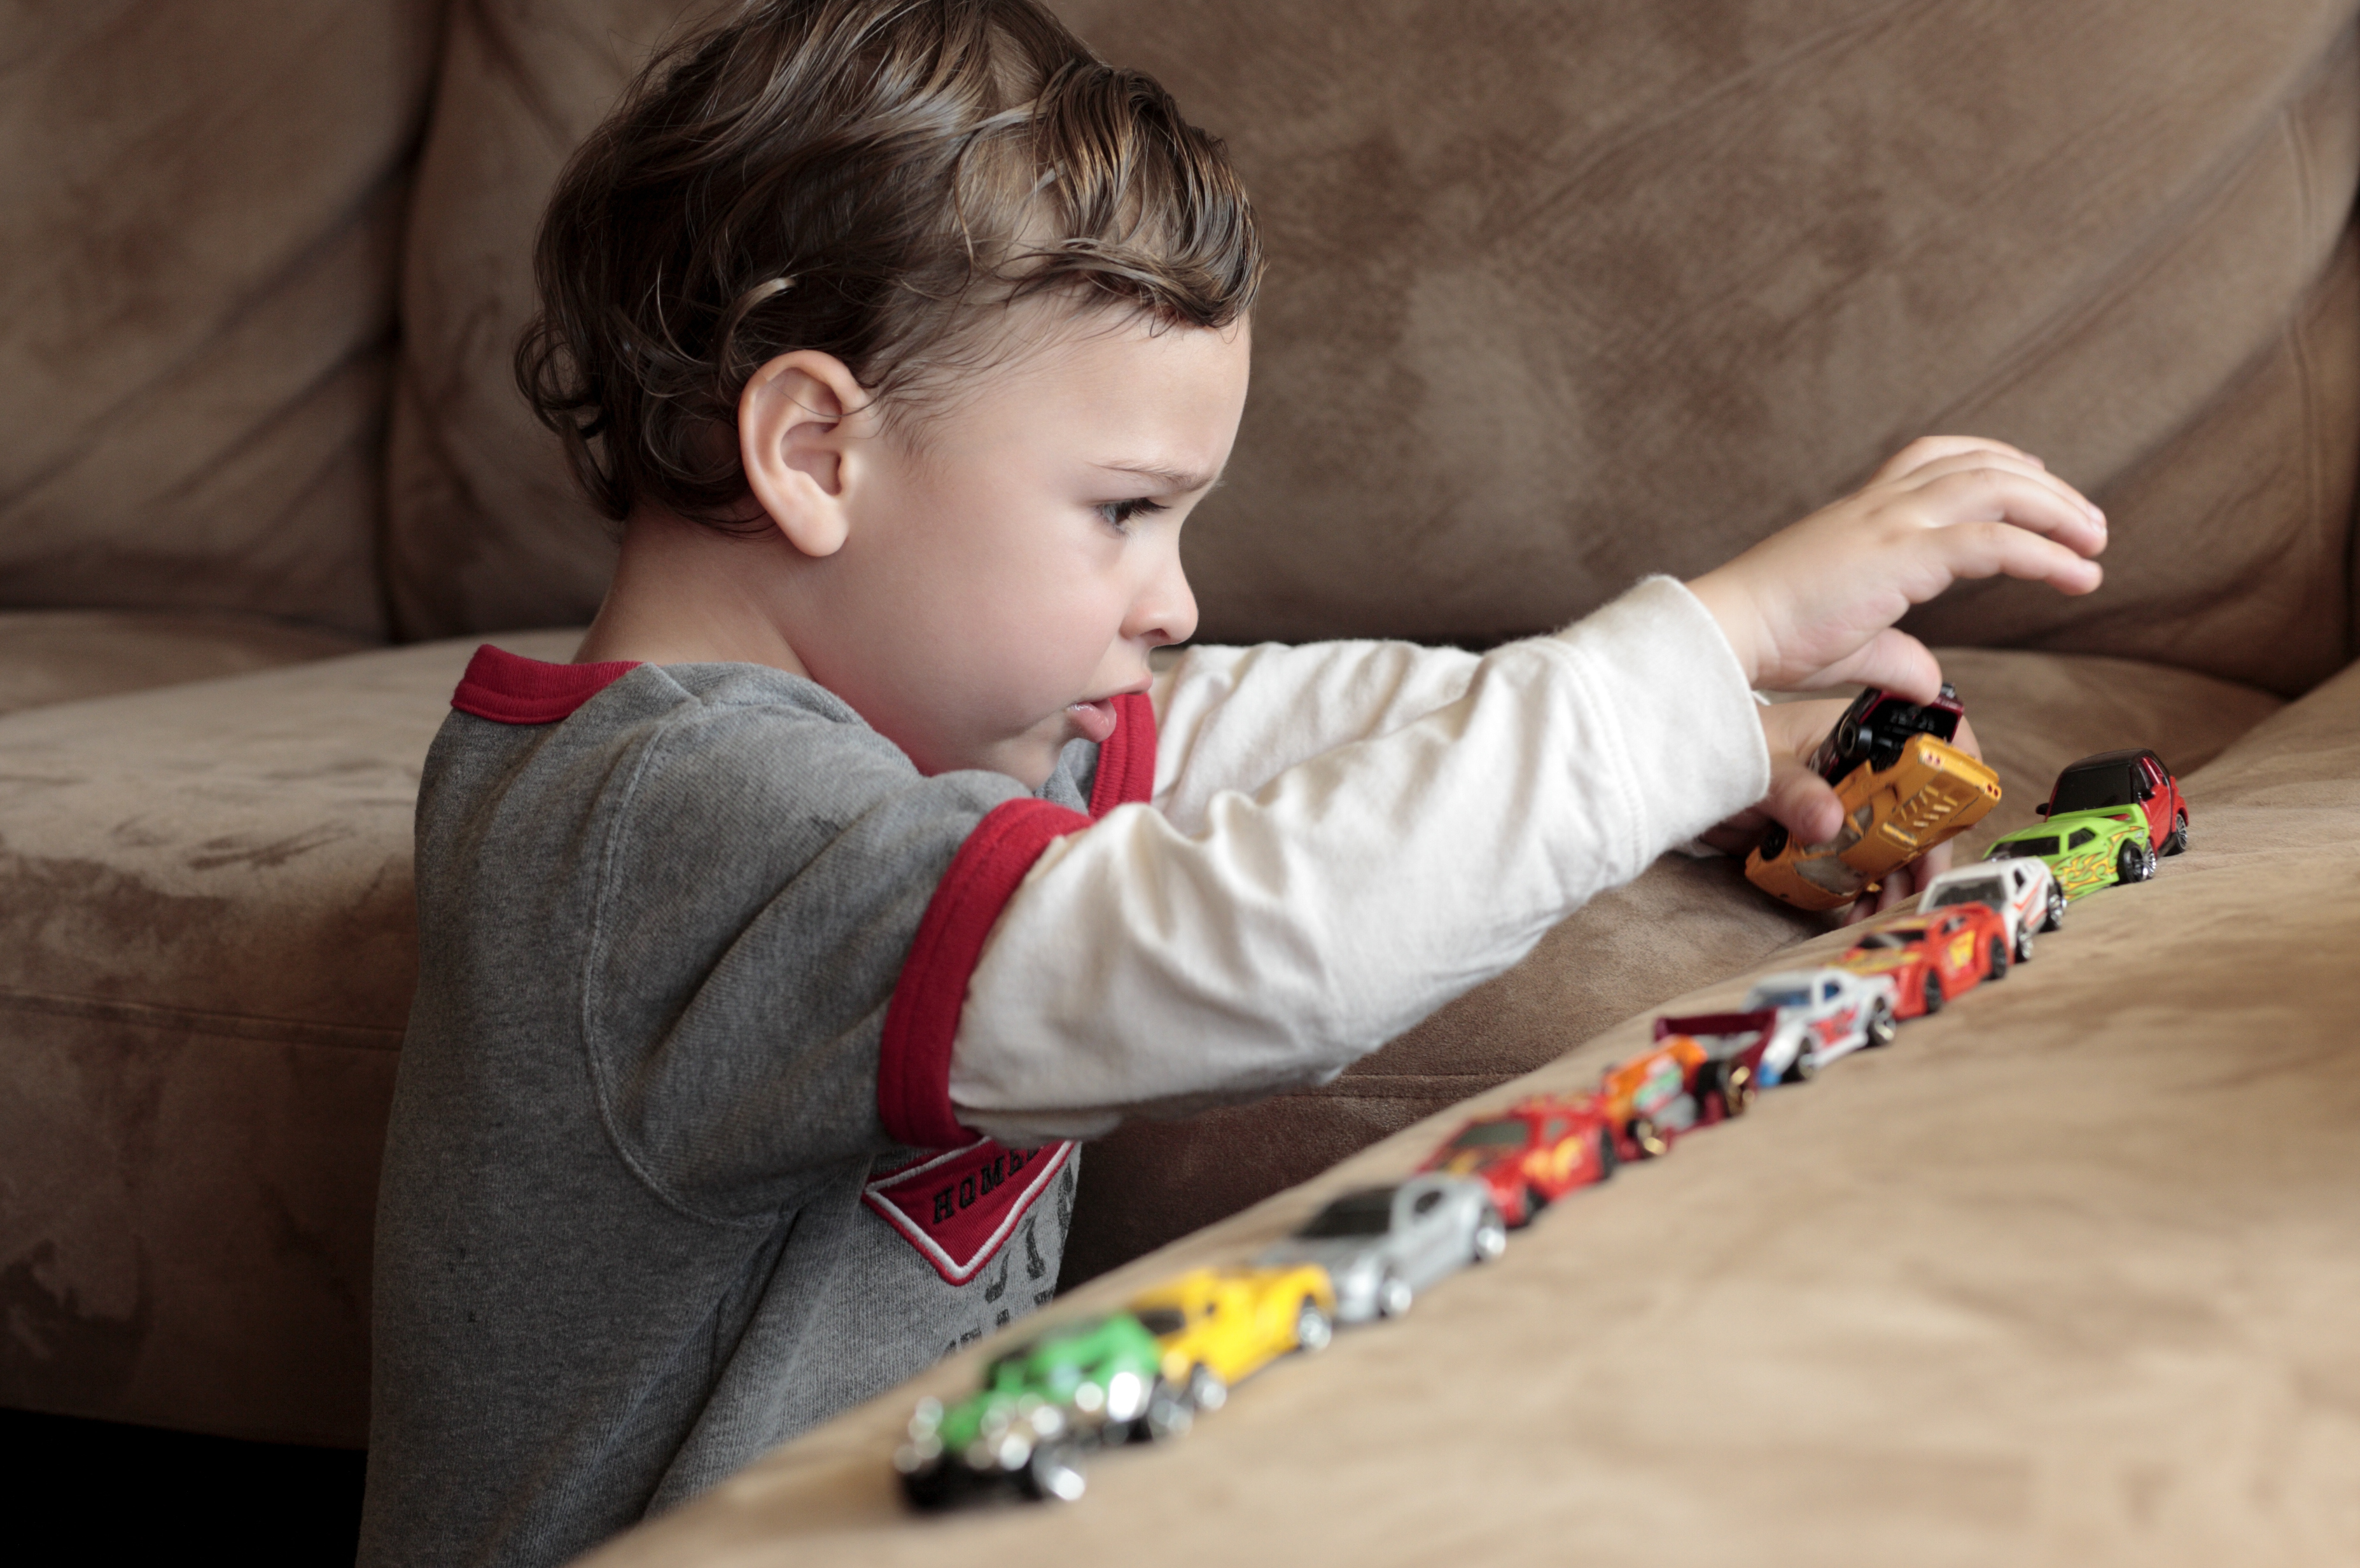 Autistic boy playing with toy cars